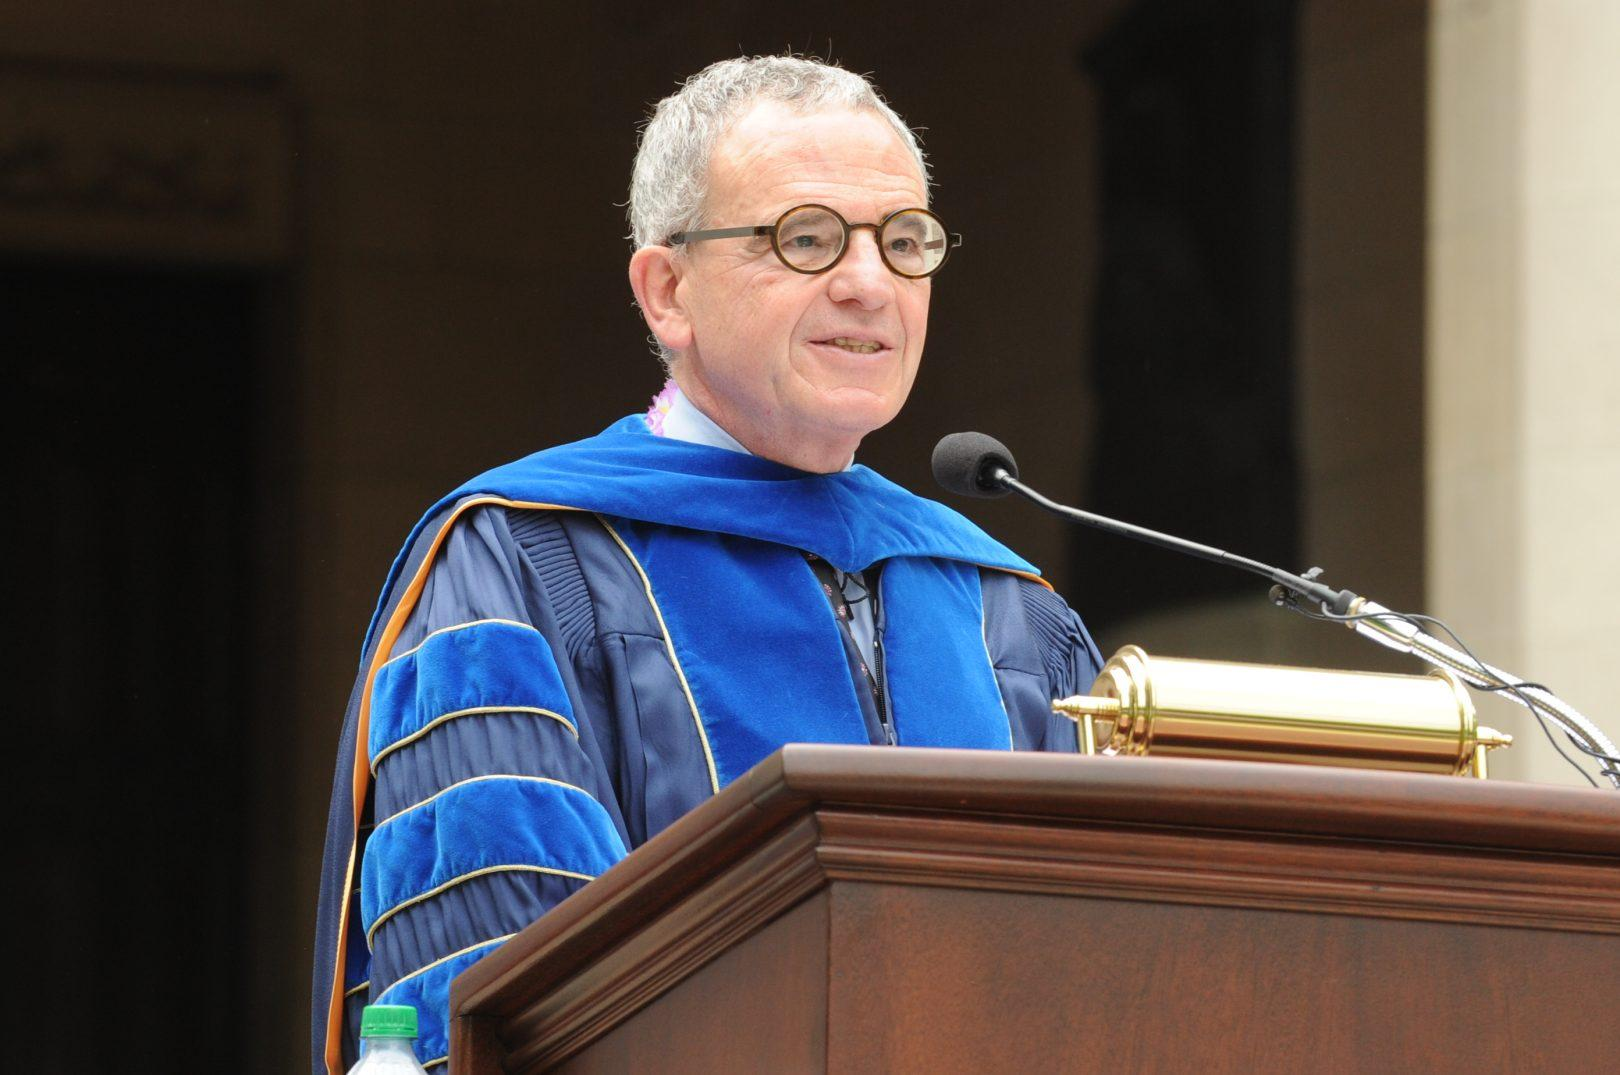 Freedman was appointed as provost, a newly-created position, in 2010. (COURTESY OF FORDHAM NEWS AND MEDIA RELATIONS)